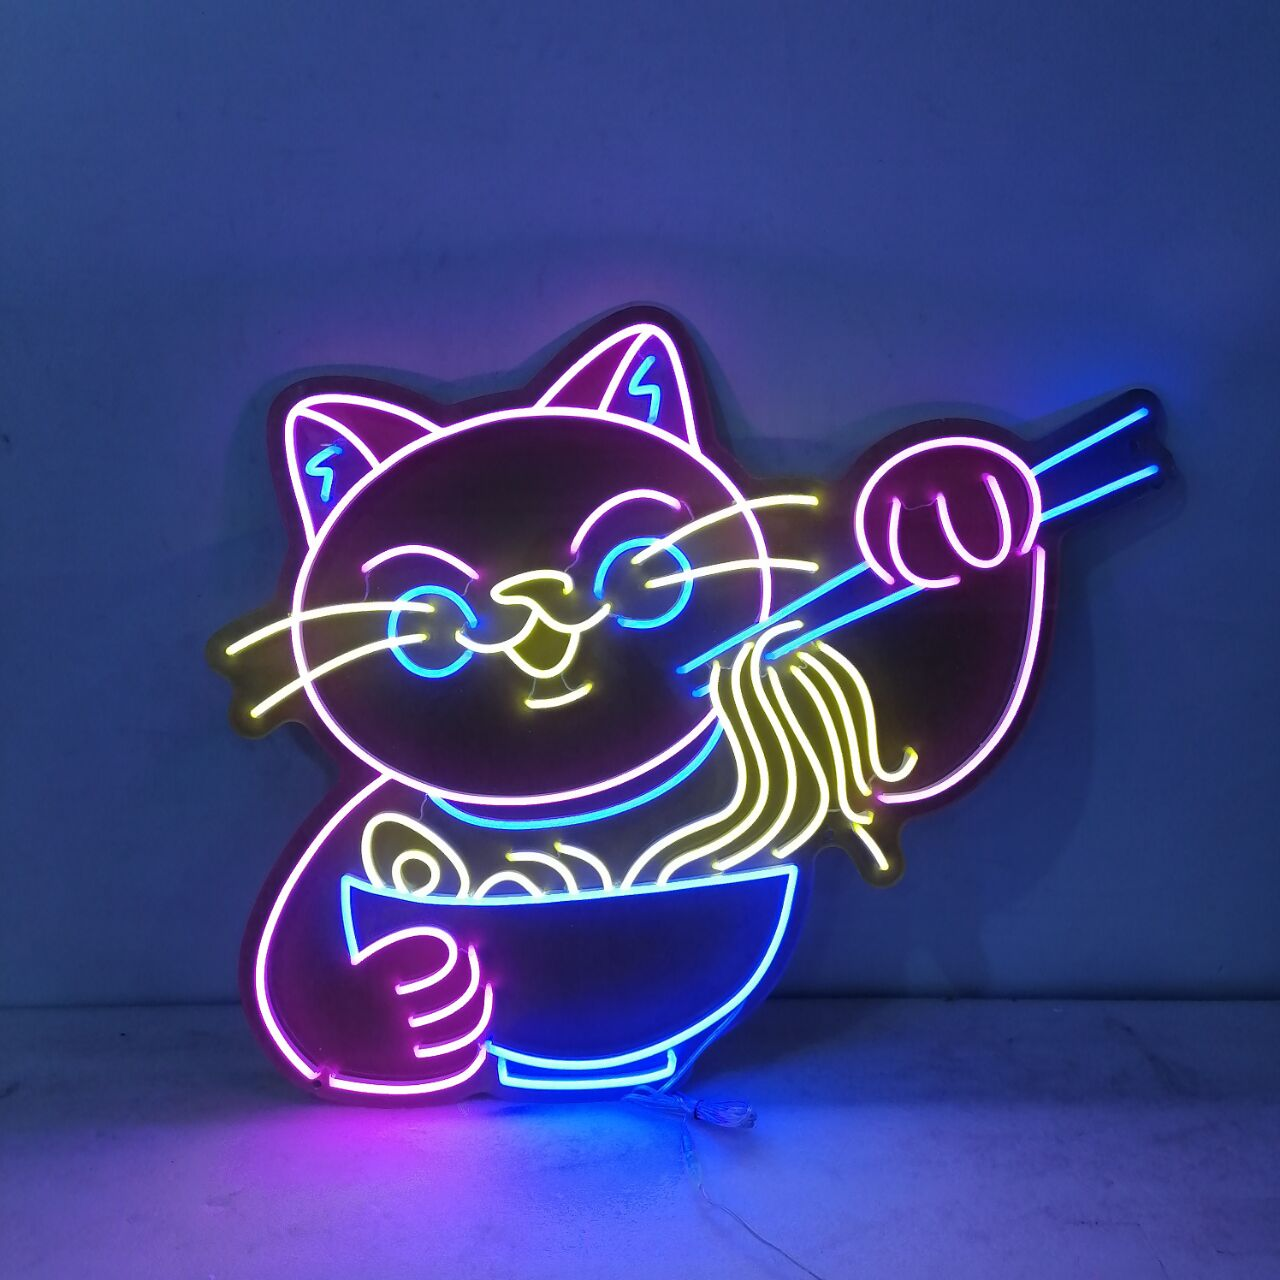 Neon Light Night Sign for Lucky Cat Hotel Display Neon Lights Room Decoration Glass Lamp Advertise Letrero Neon